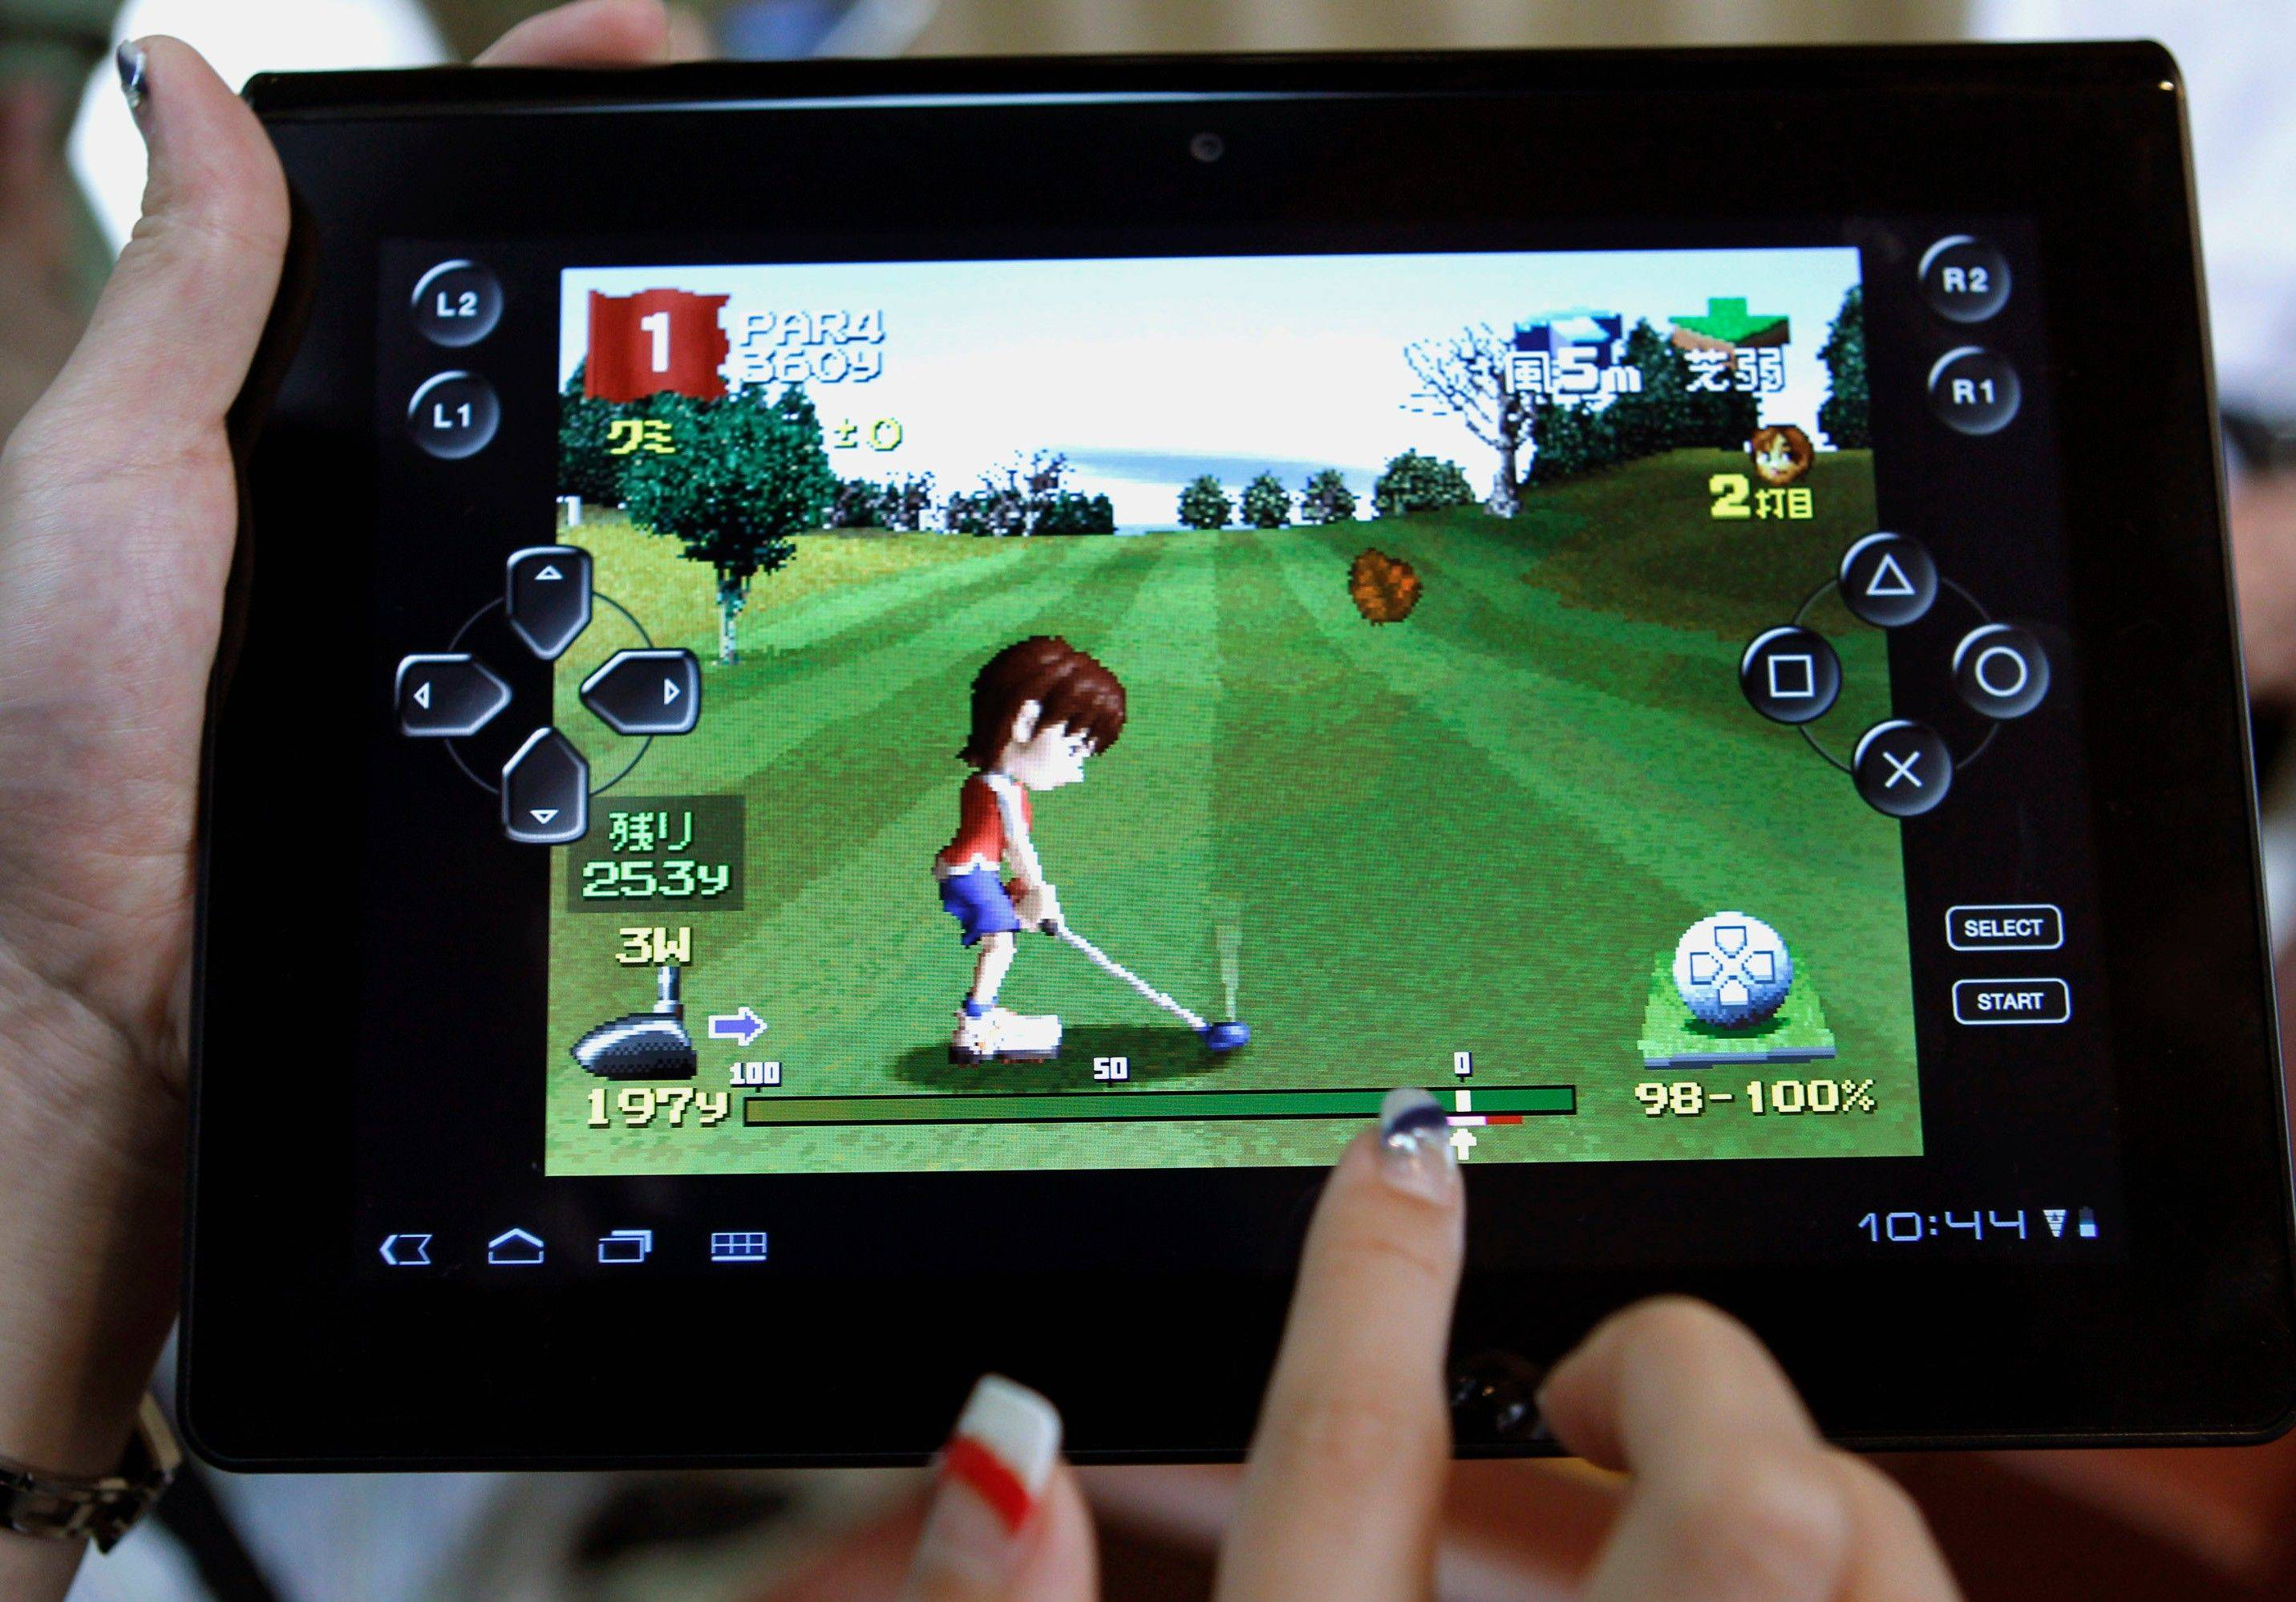 A models plays a game on Sony�s new tablet computer Tablet S during a launch event in Tokyo, Thursday. The wedge-shaped Tablet S, about the size of an iPad, can double as a universal remote control. Sony said the Tablet S is going on sale on Sept. 17 in Japan.